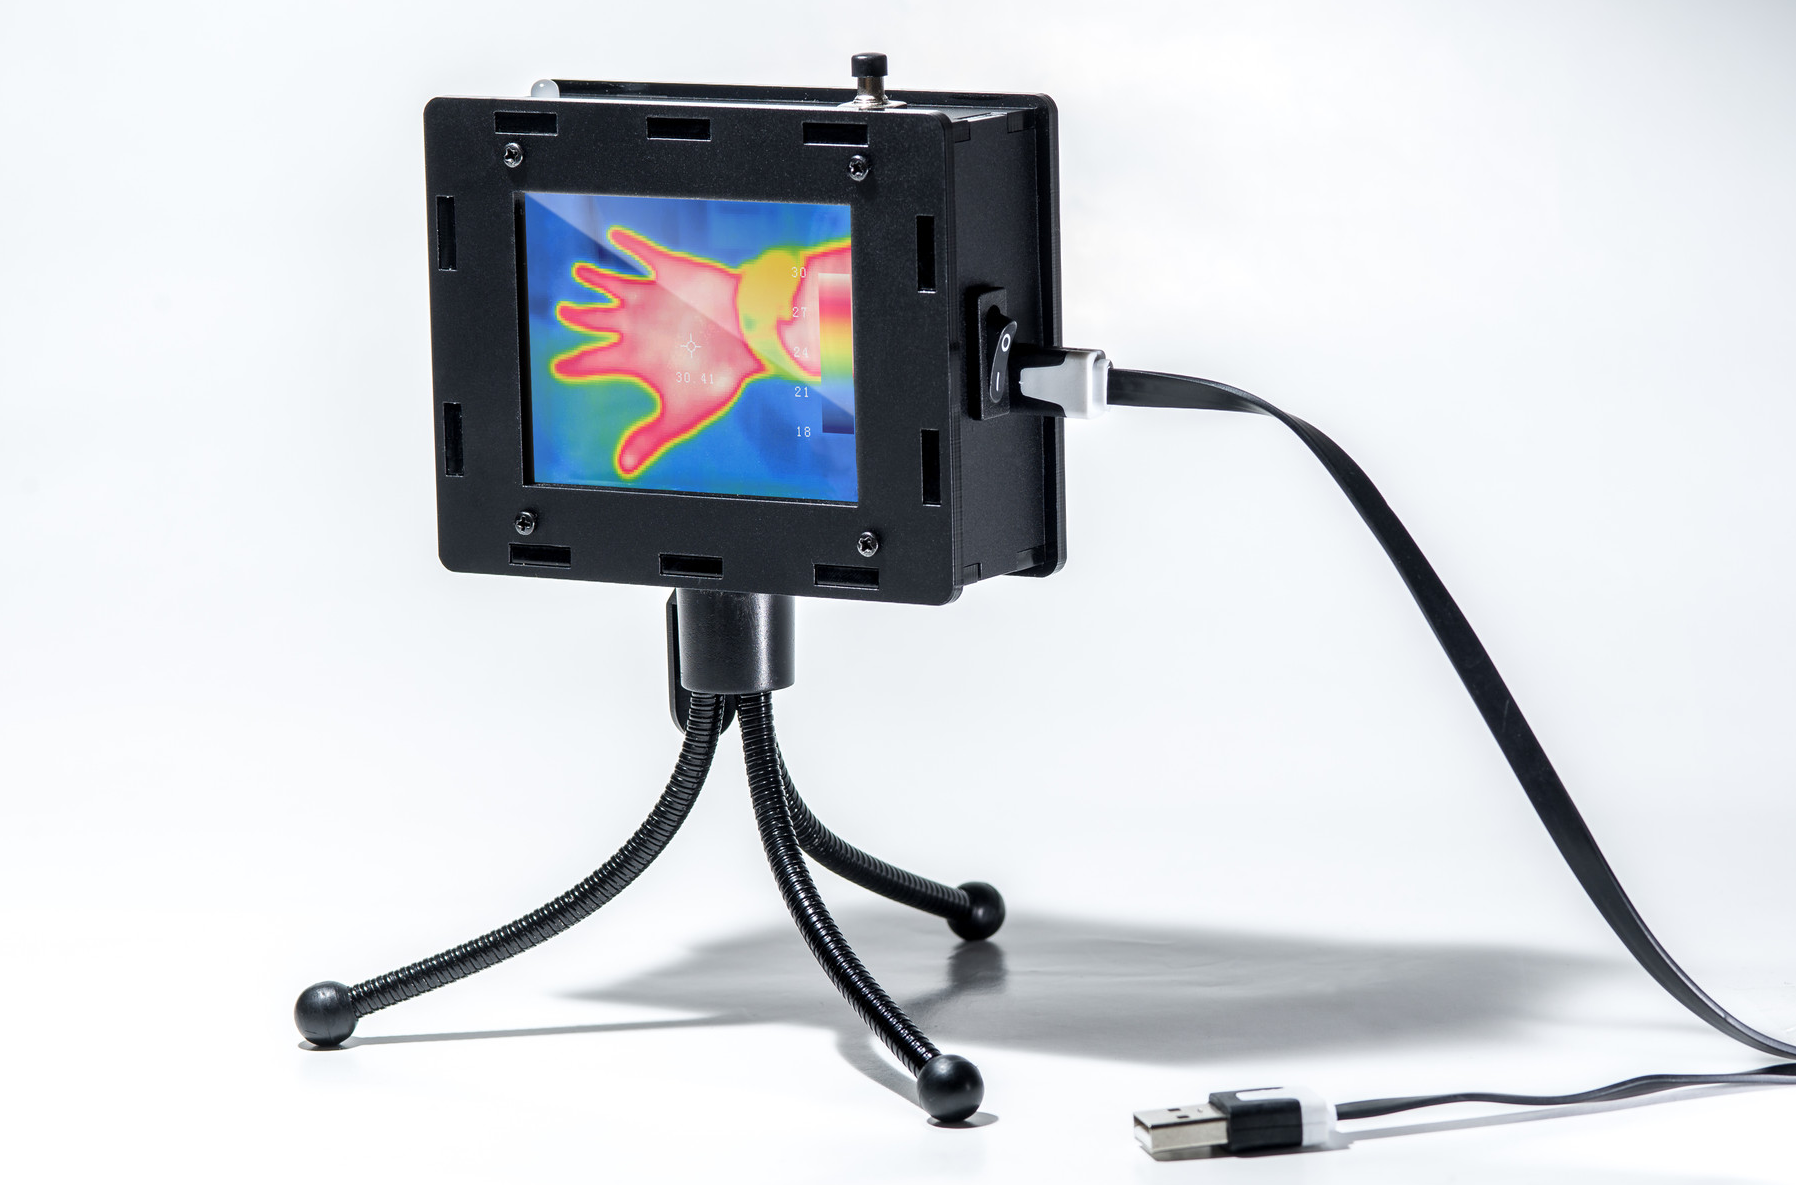 DIY-Thermocam Designed by GroupGets User